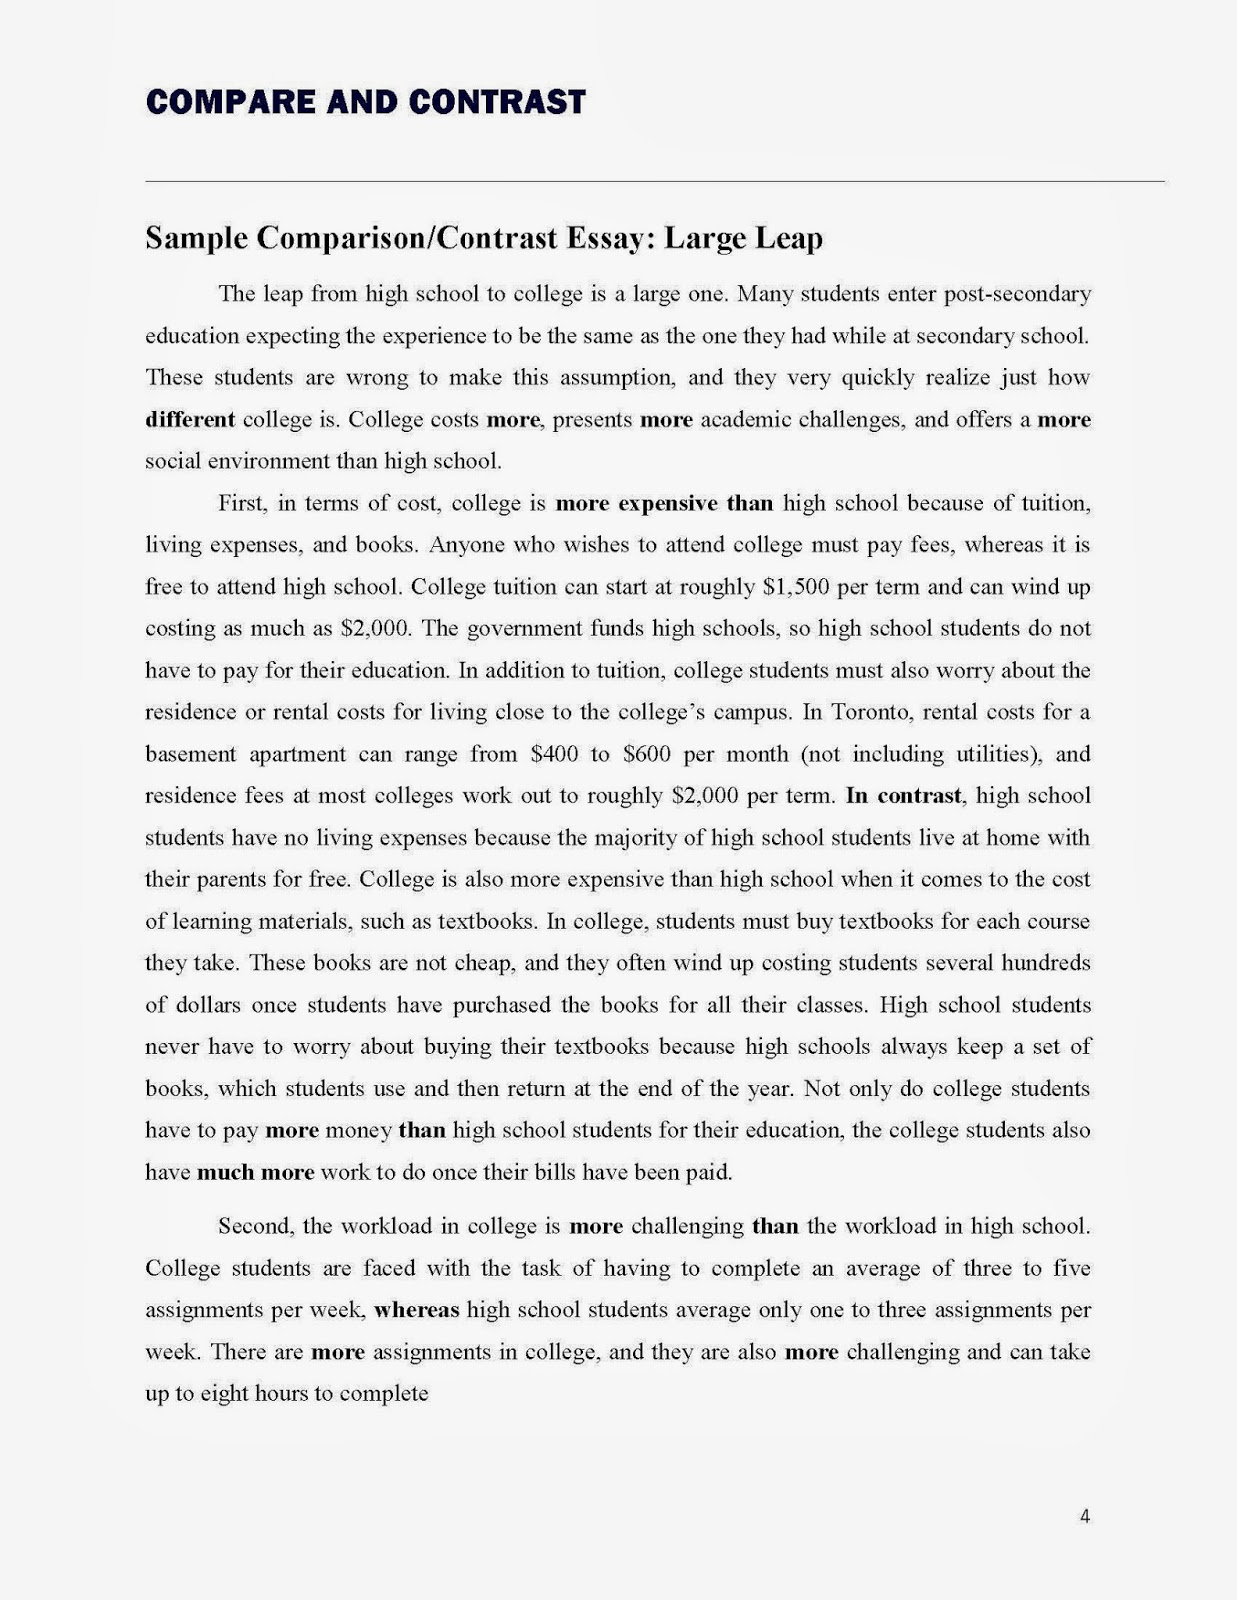 004 Essay Example Compare2band2bcontrast2bessay Page 4 Compare And Contrast Top Intro Introduction Paragraph Sample Full